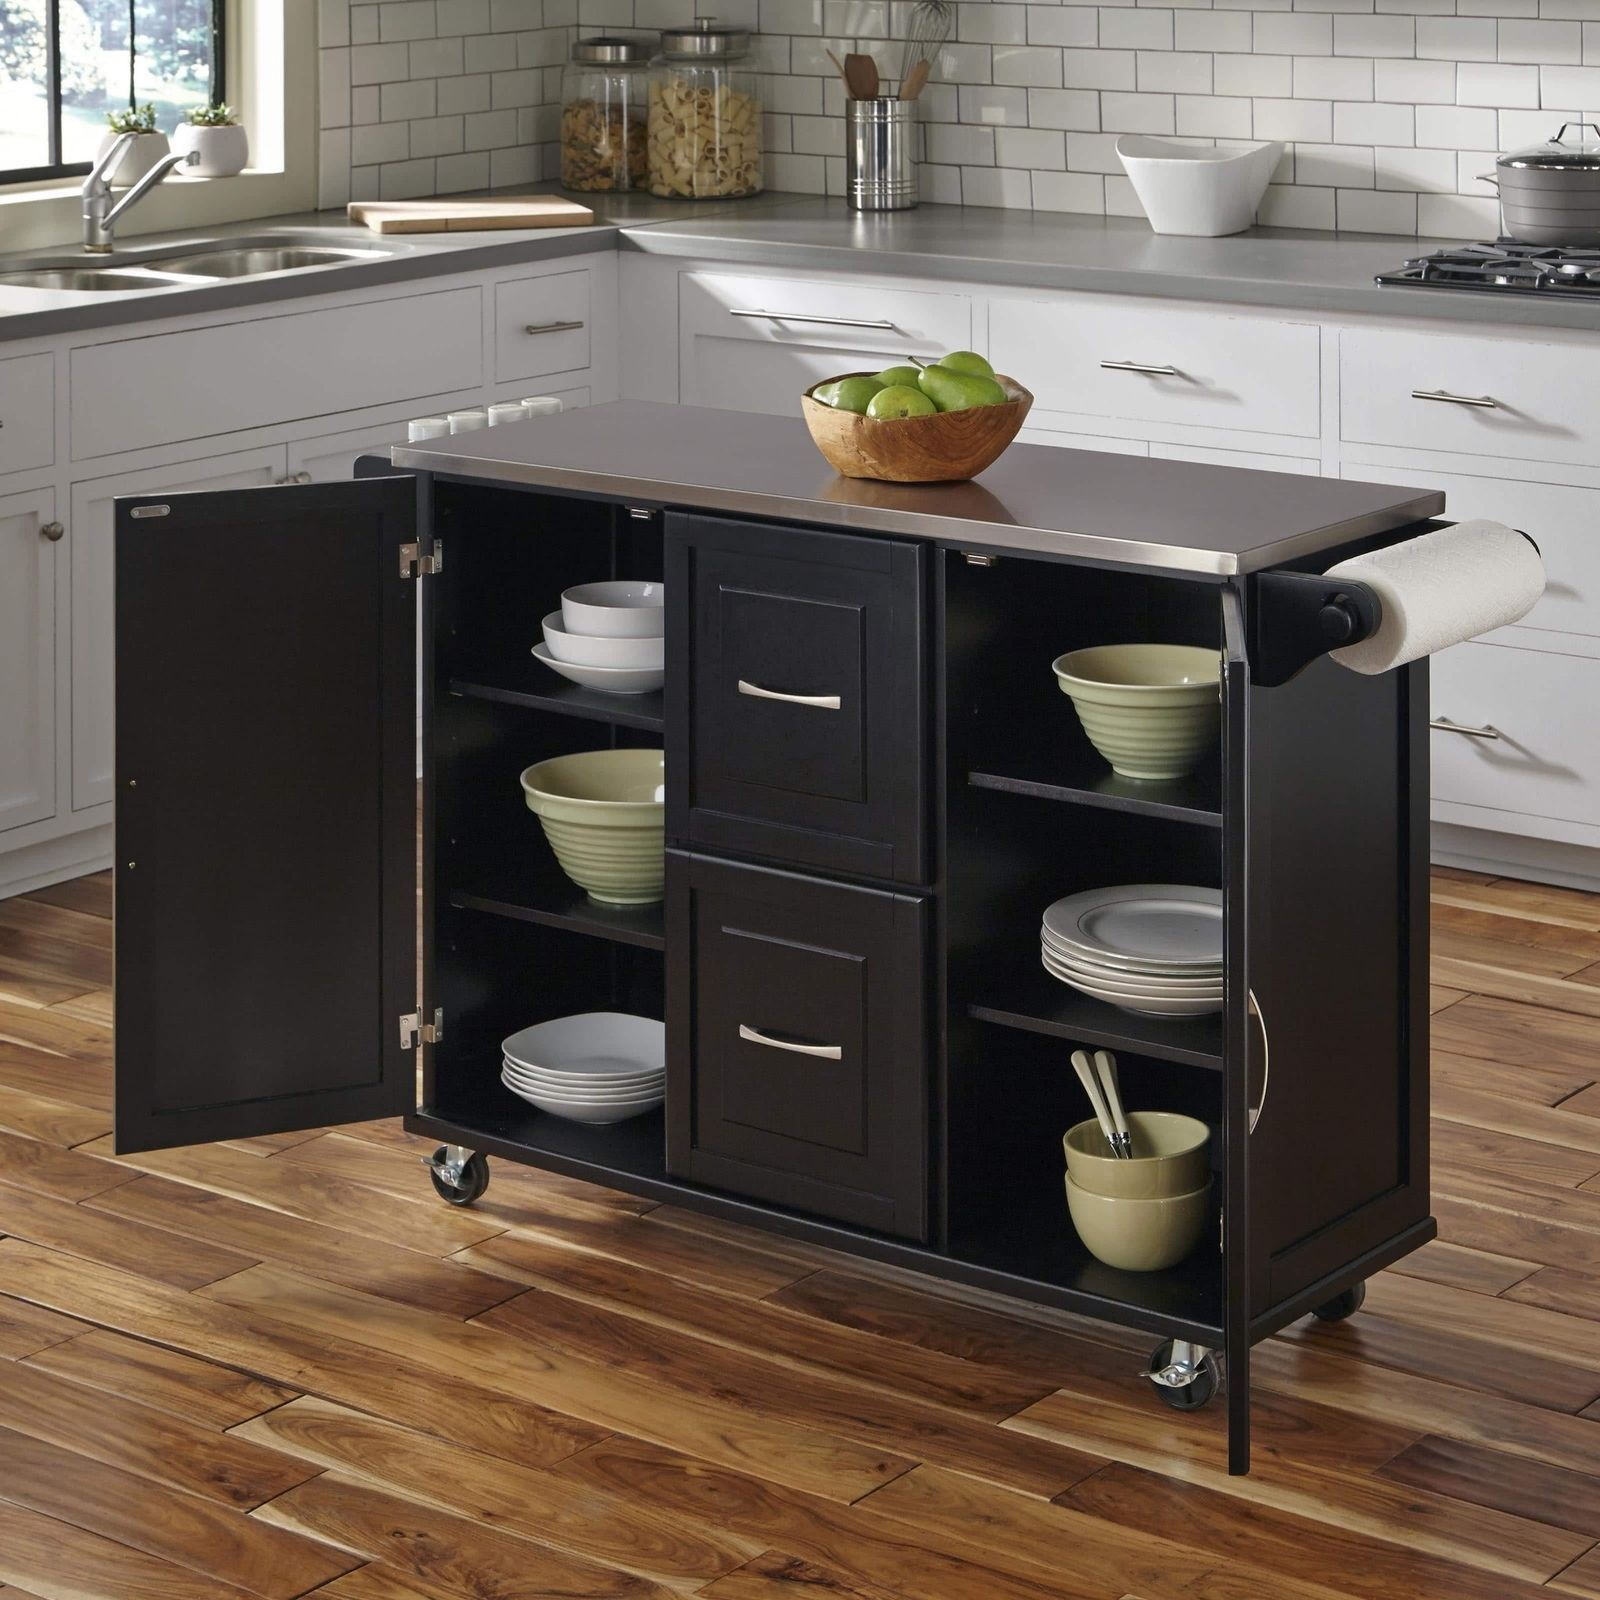 kitchen storage island cart black large kitchen island utility cart rolling cabinet storage stainless table kitchen 5688